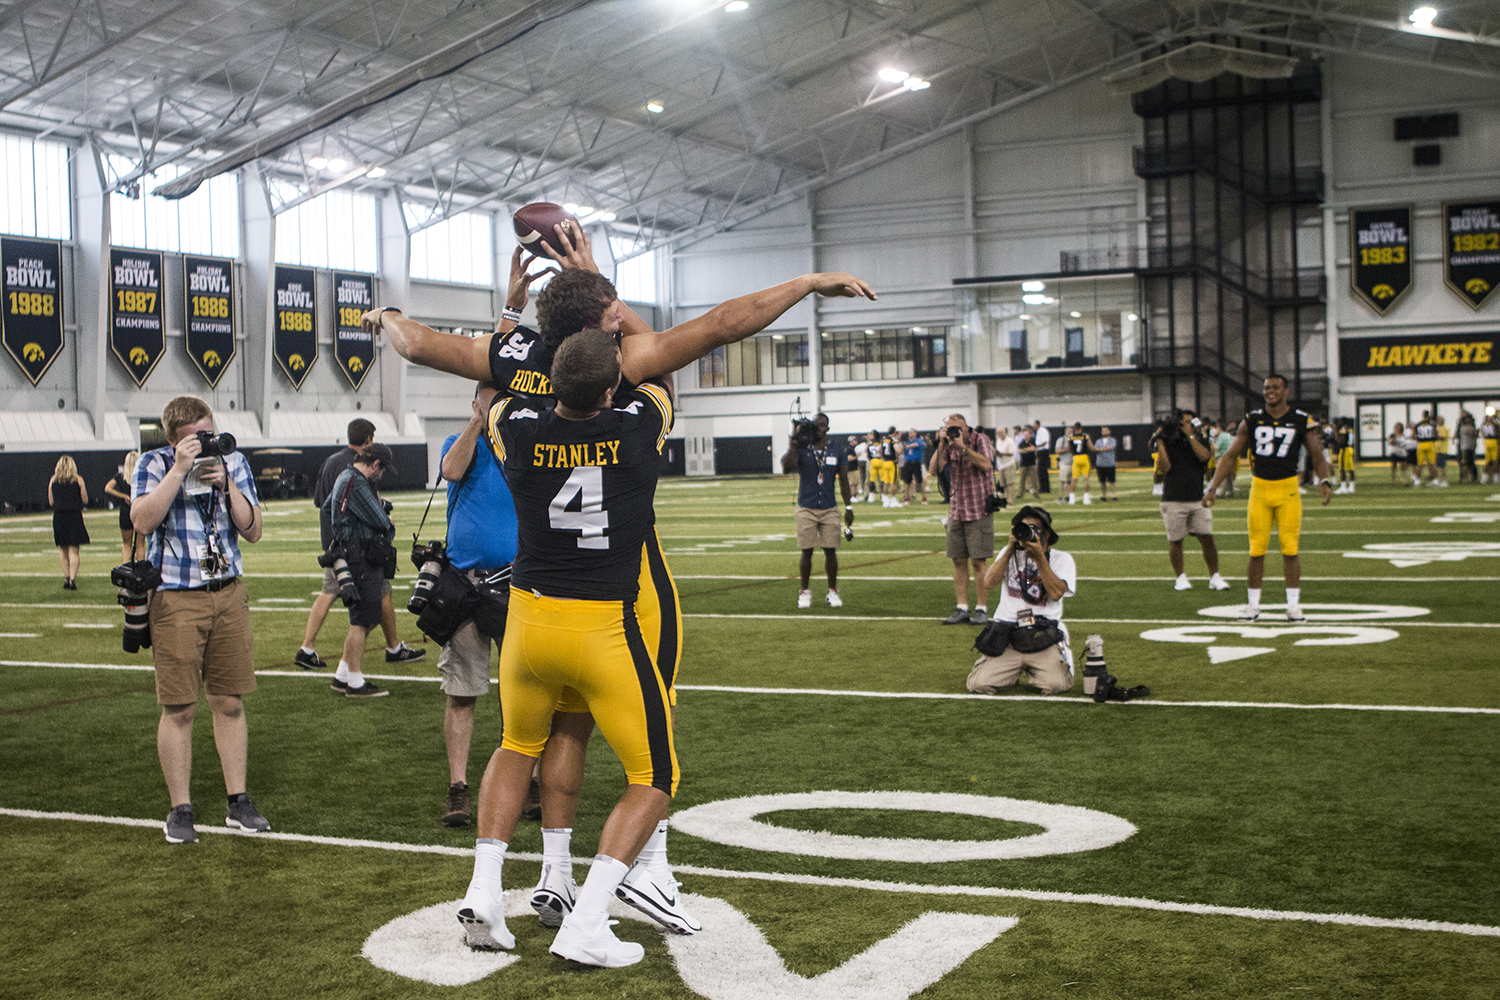 Iowa tight end T.J. Hockenson (left) and quarterback Nate Stanley (right) catch a football in the University of Iowa Indoor Practice Facility during Iowa Football Media Day on Friday, August 10, 2018. Iowa will open the 2018 football season at home against Northern Illinois on Saturday, September 1.